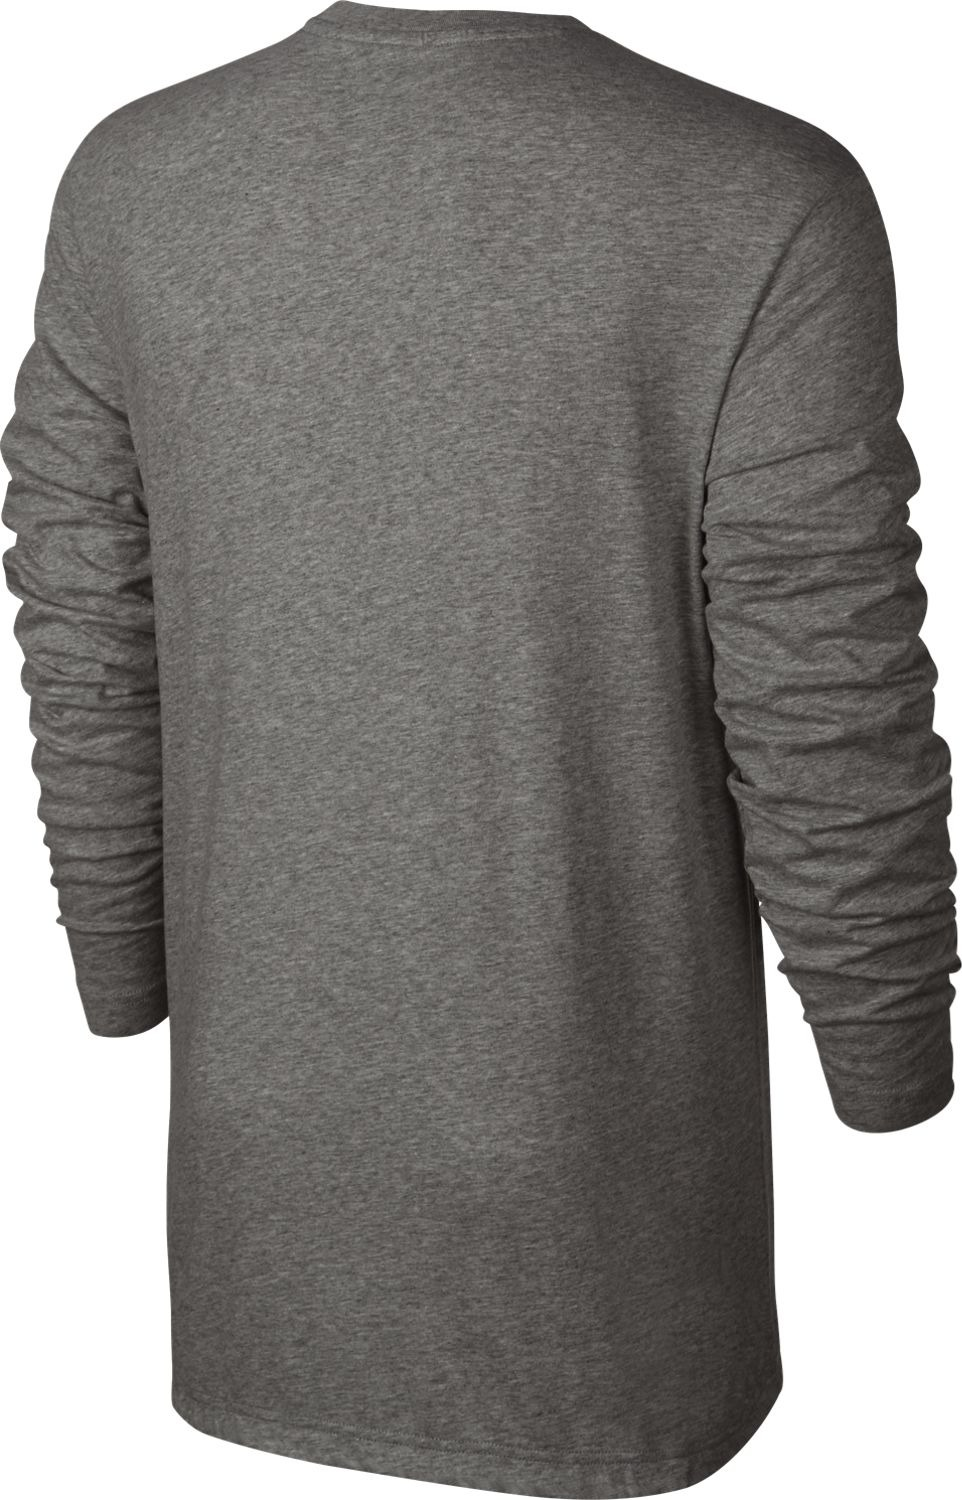 Koszulka Nike Top Long Sleeve Club 804413 063